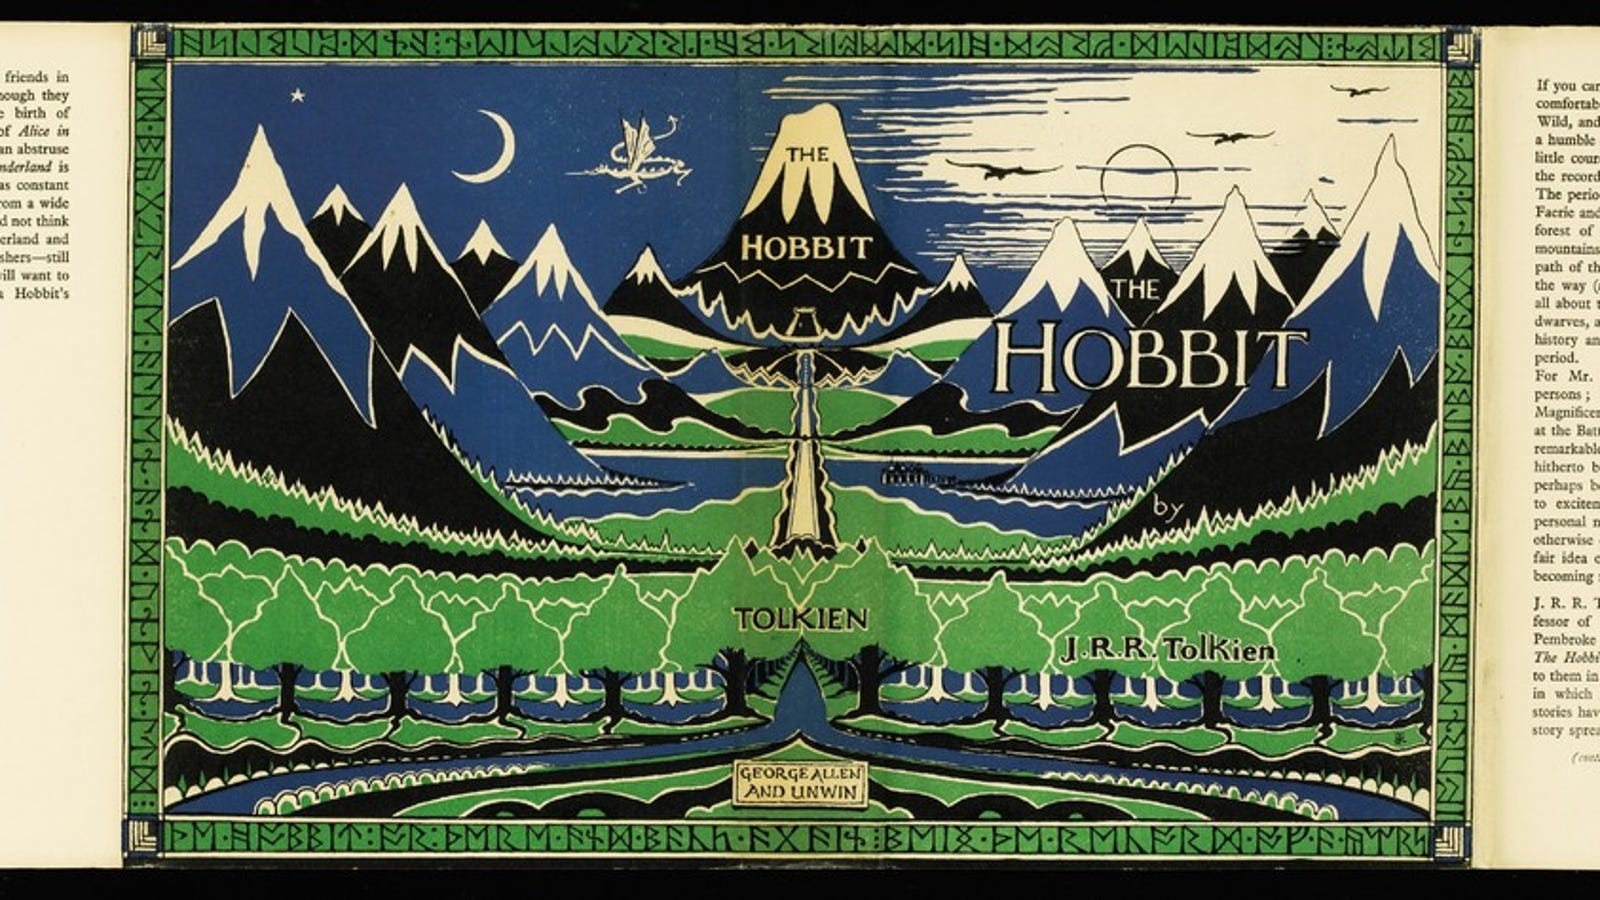 1st Edition Of The Hobbit Sells For 137000